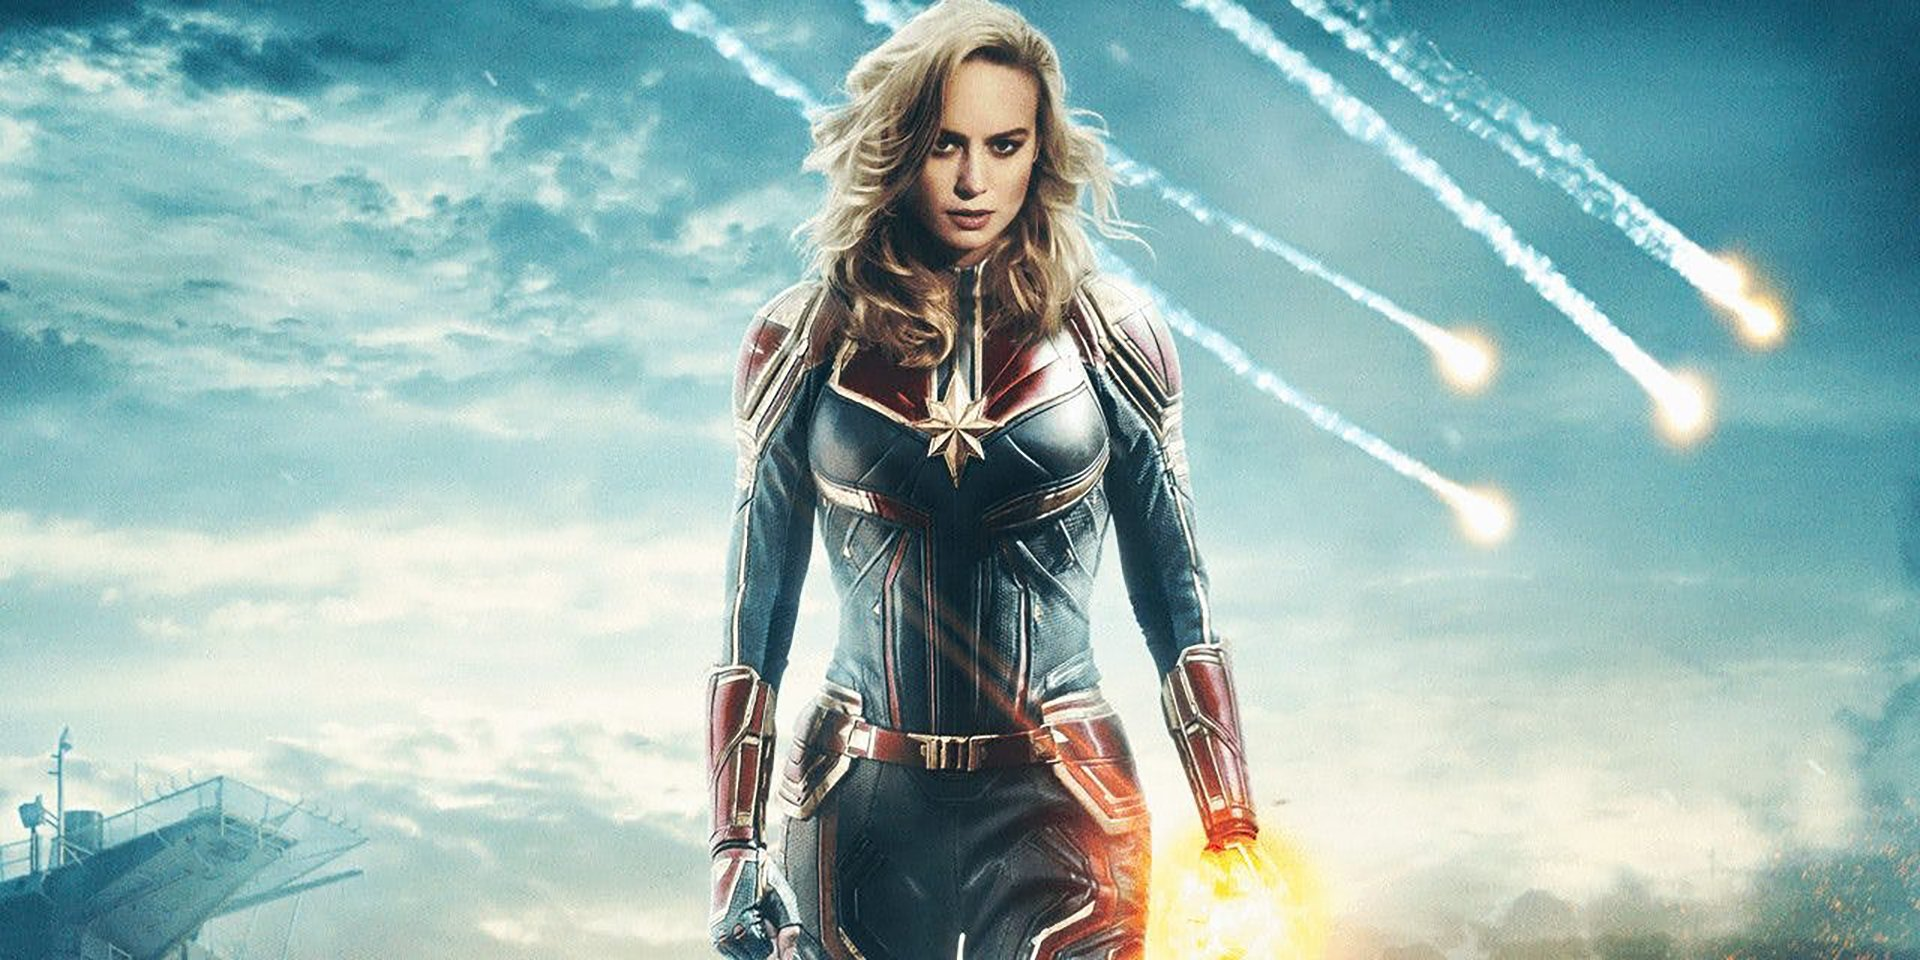 captain marvel avengers brie larson super hero image wallpaper